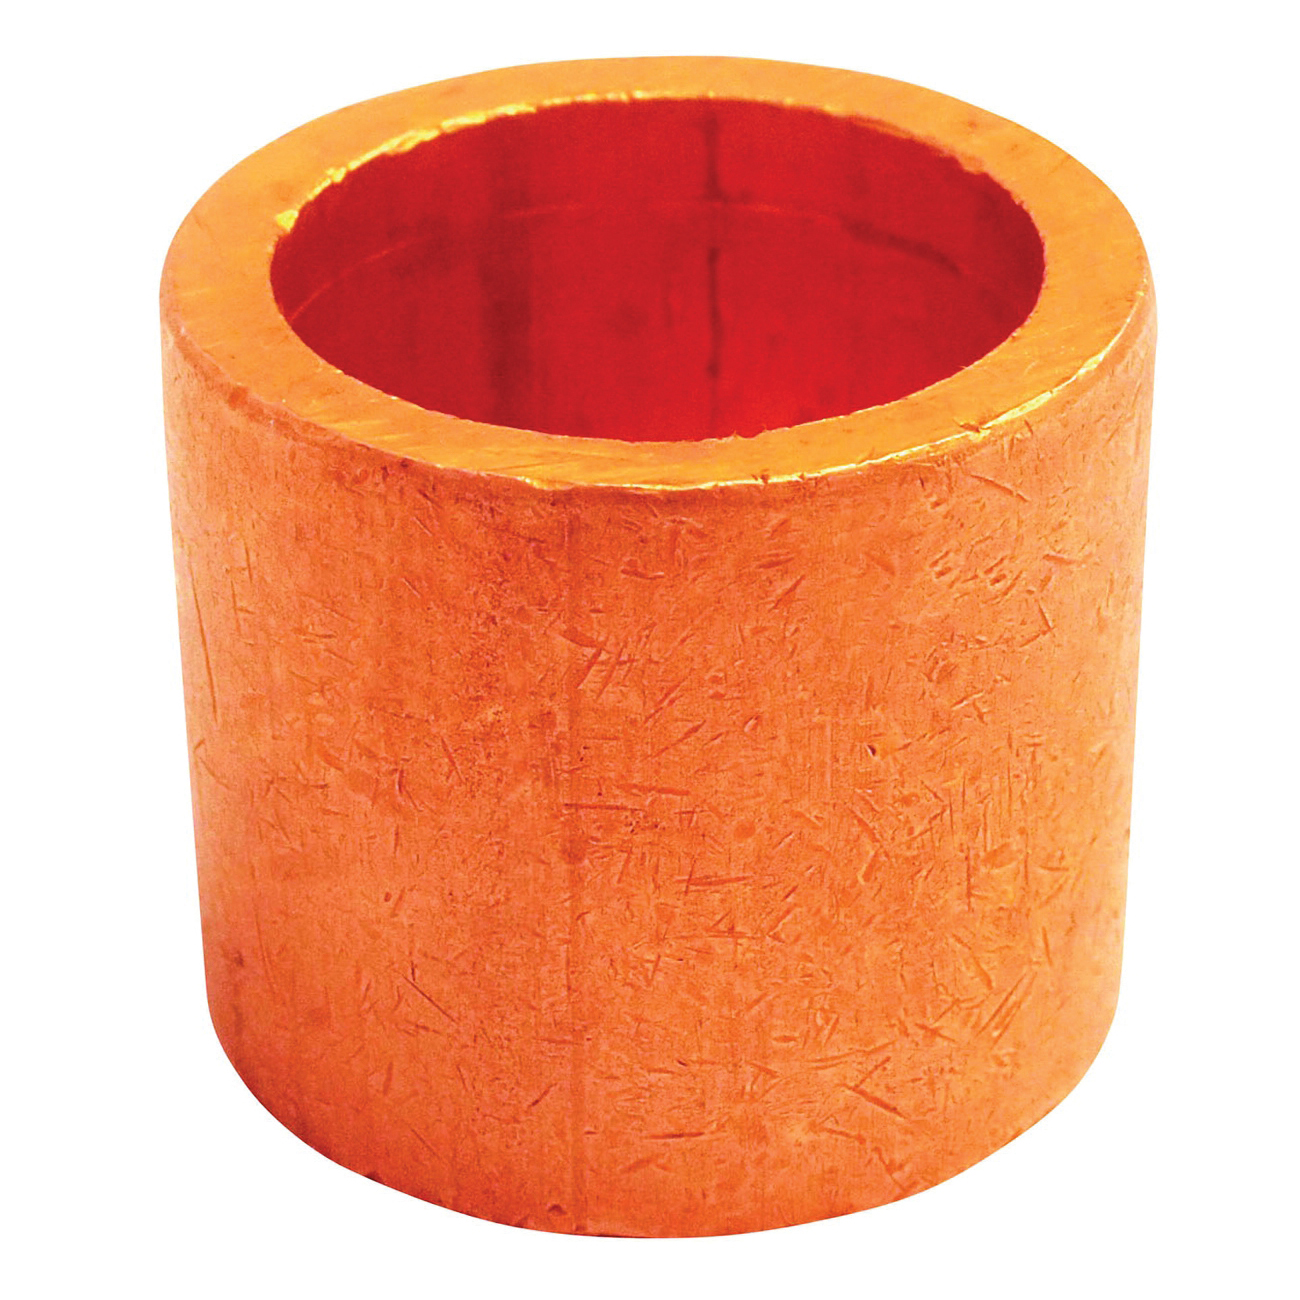 Picture of EPC 119 Series 10030550 Flush Bushing, 3/4 x 1/2 in, FTG x Sweat